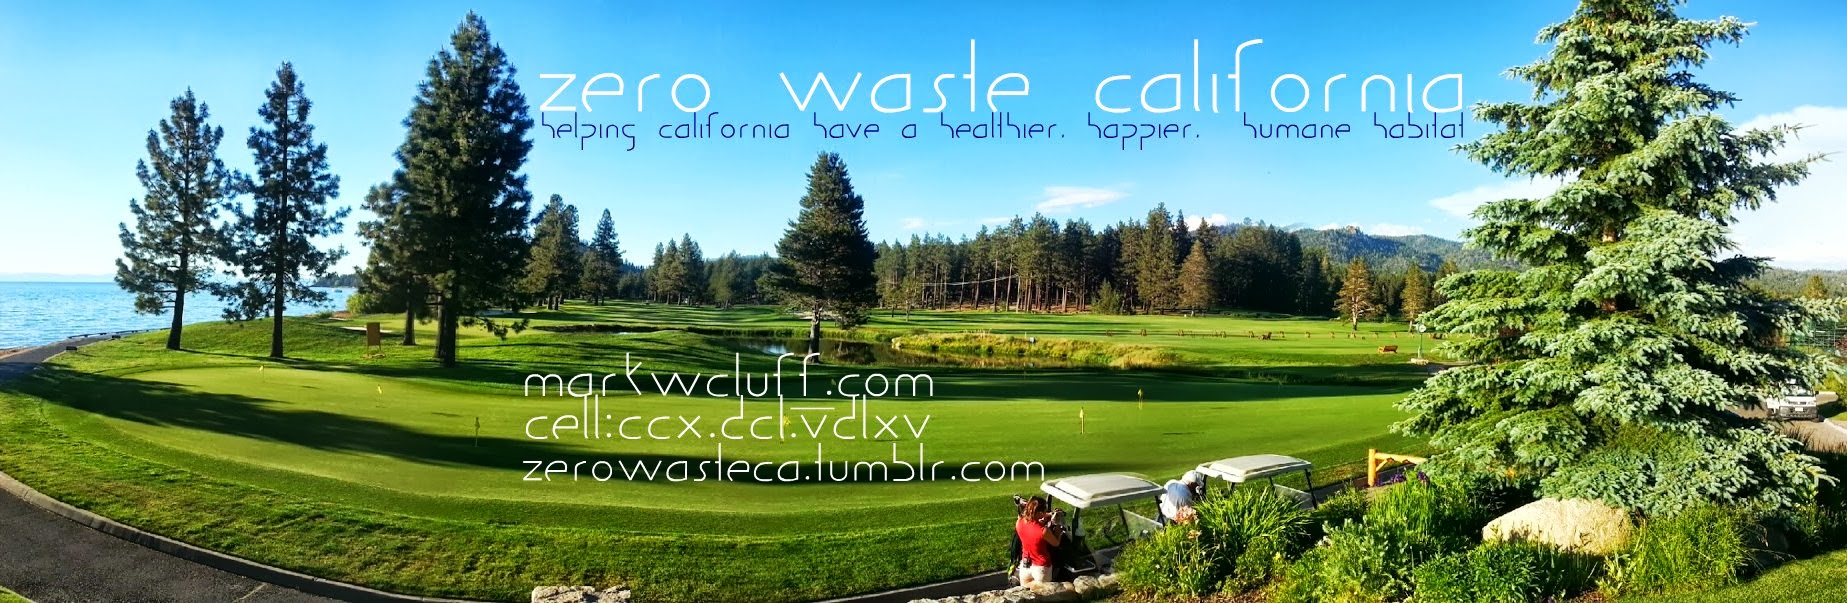 ZERO WASTE CALIFORNIA